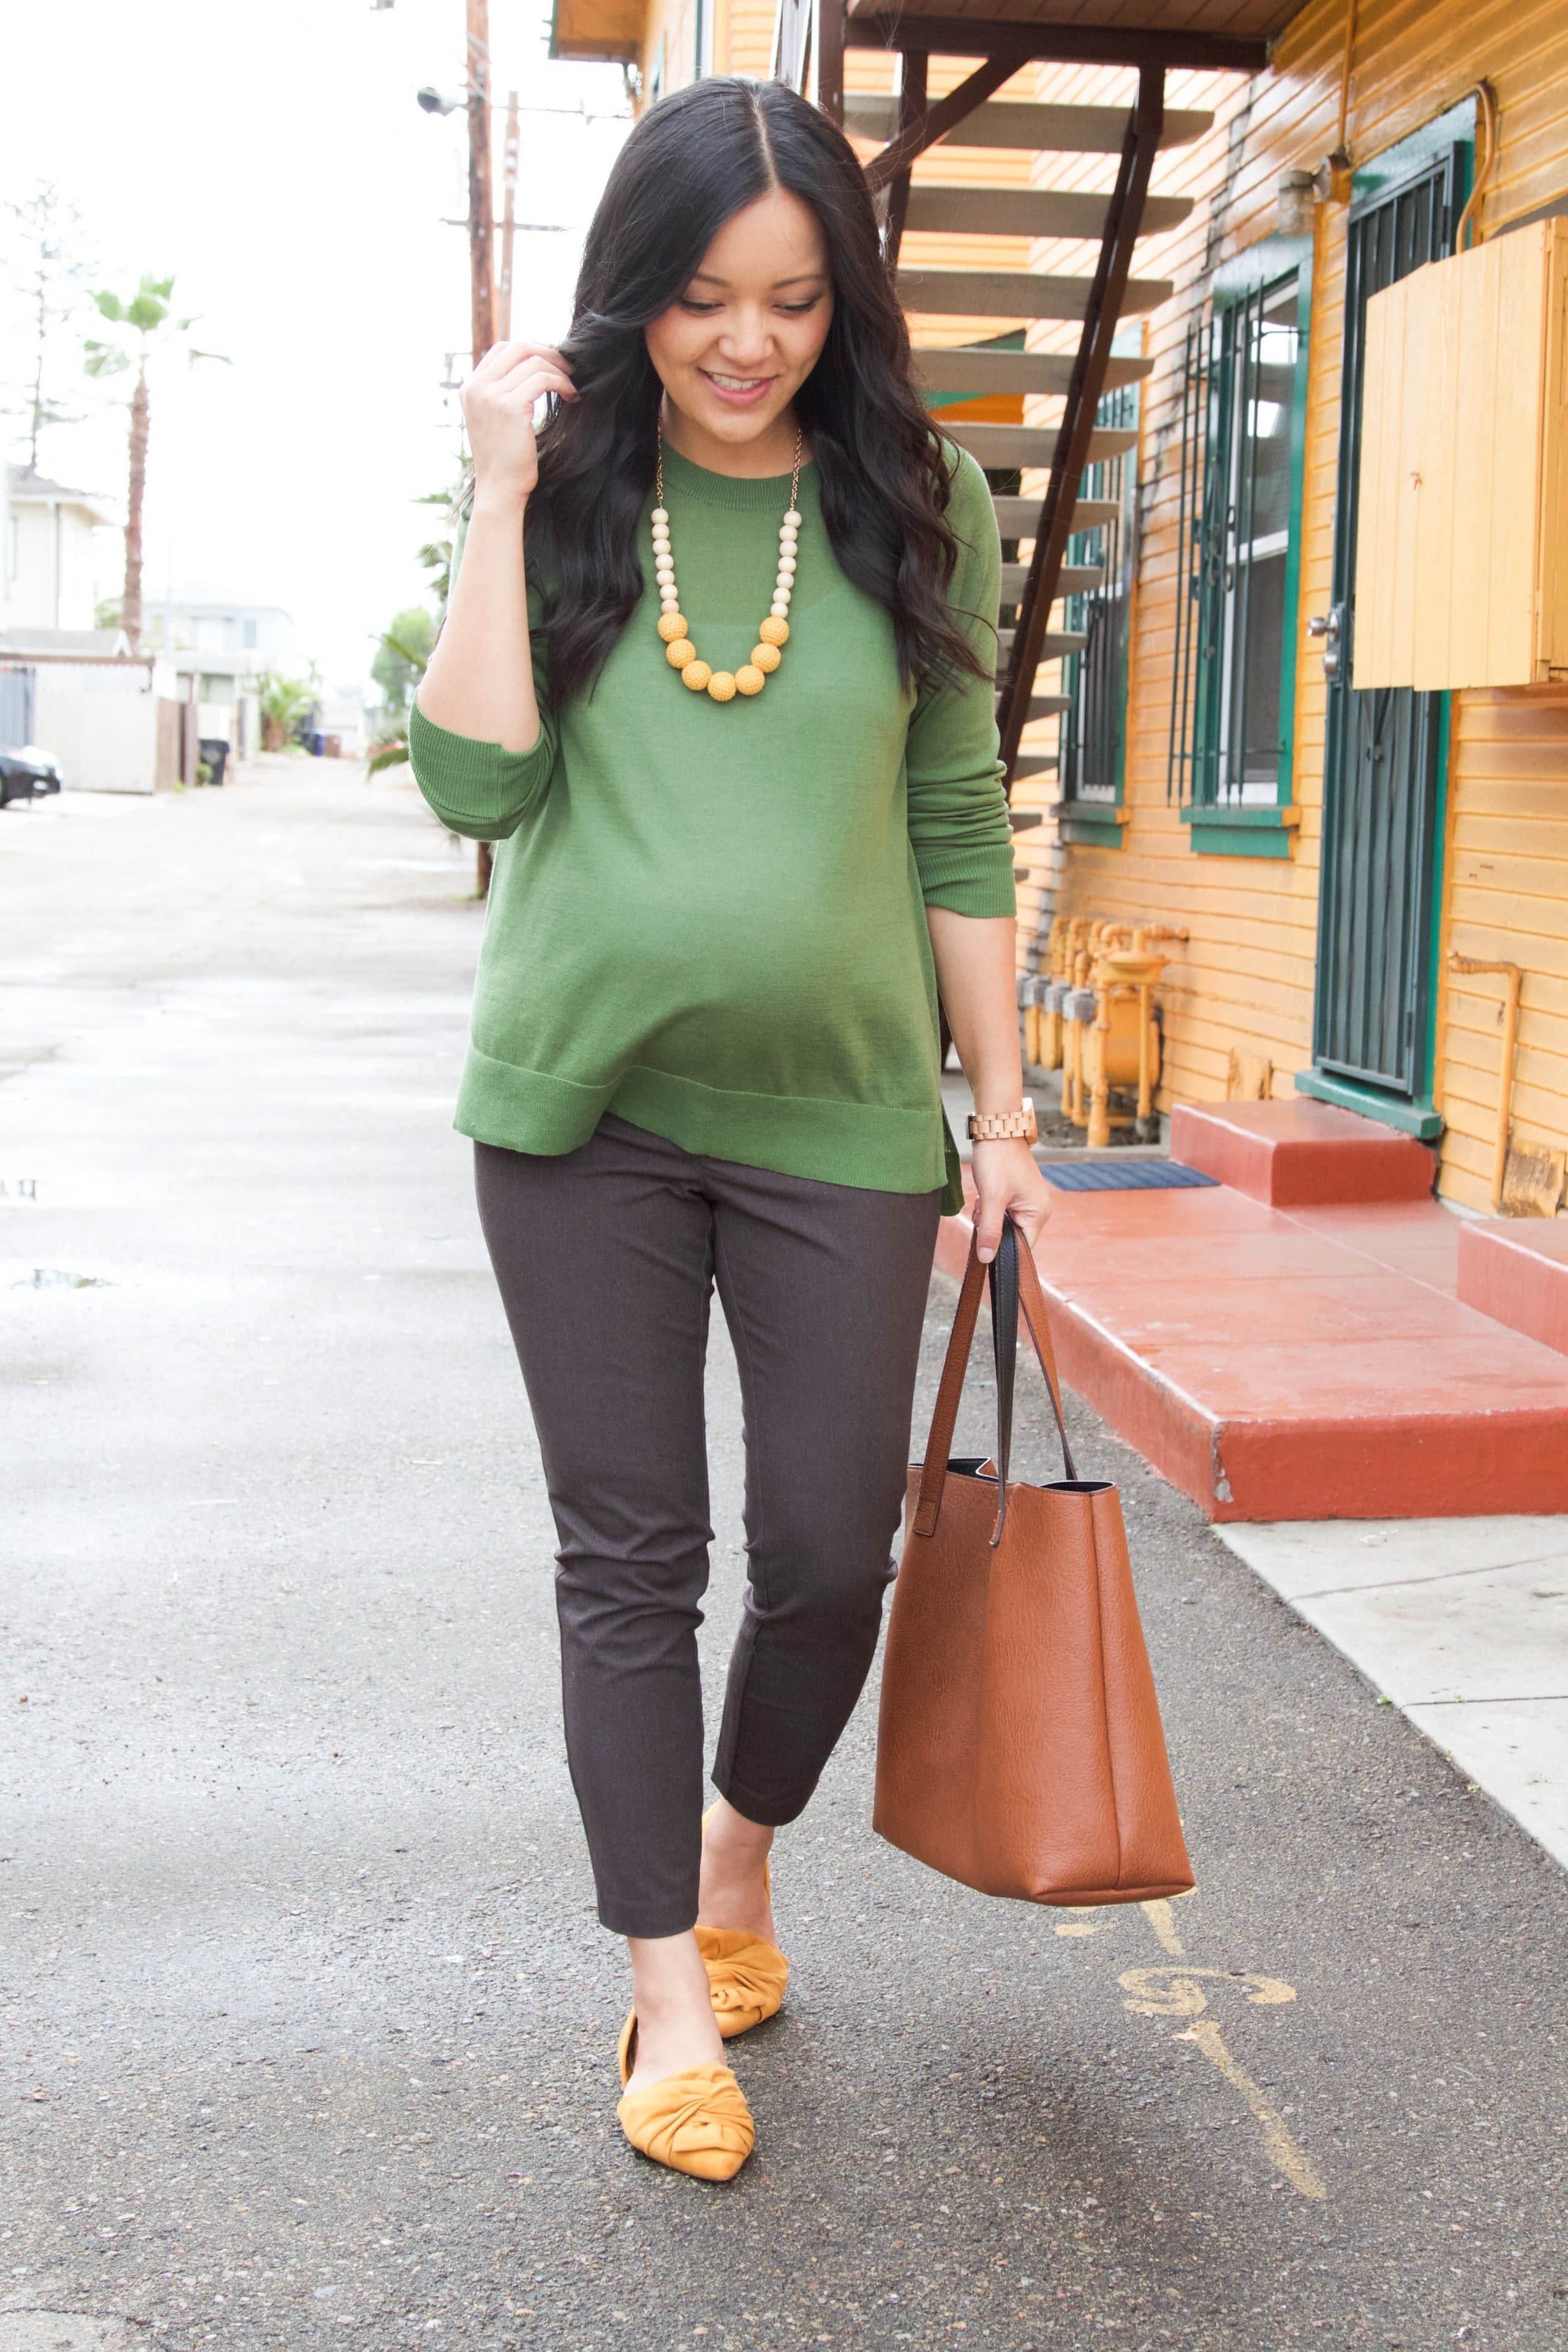 Green Sweater + Gray Chinos + Mustard Flats + Statement Necklace